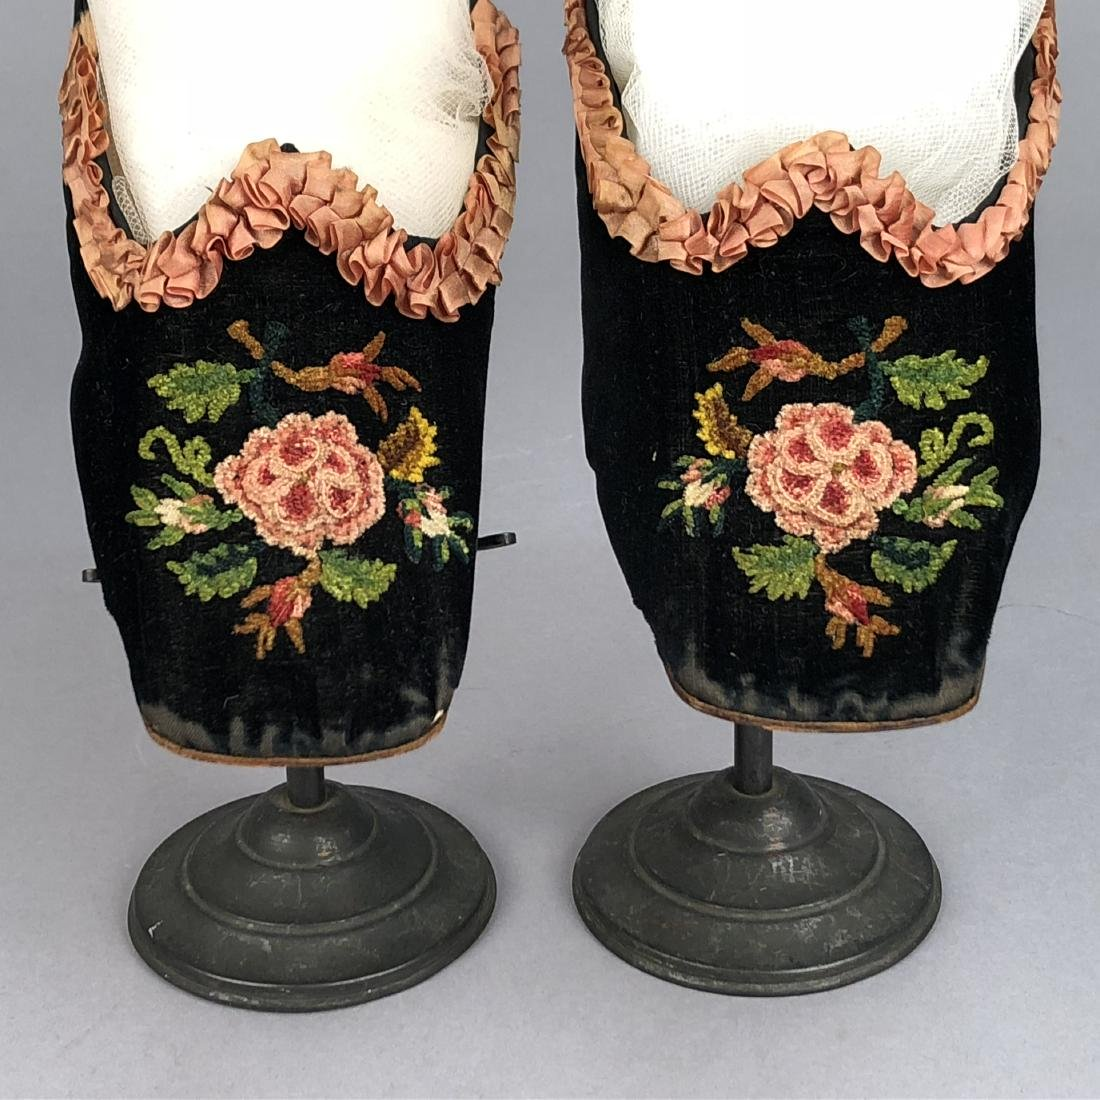 VELVET SLIPPERS with CHENILLE EMBROIDERY, c. 1860 - 3